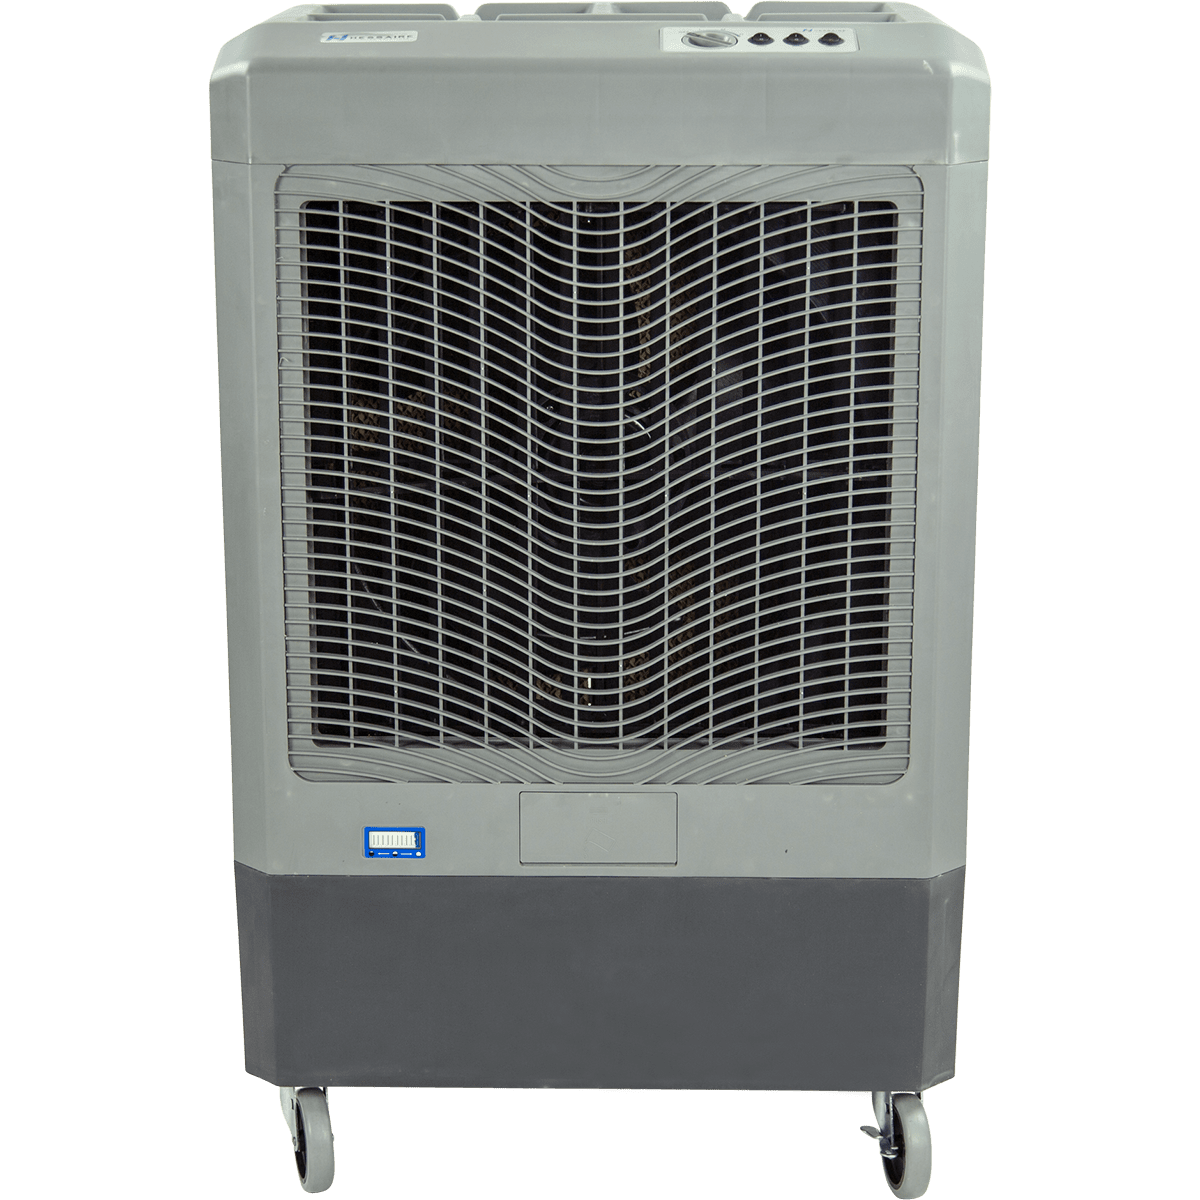 Mc61m Evaporative Cooler Sylvane Swamp Control Box Wiring Diagram Hessaire 5300 Cfm 3 Speed Portable